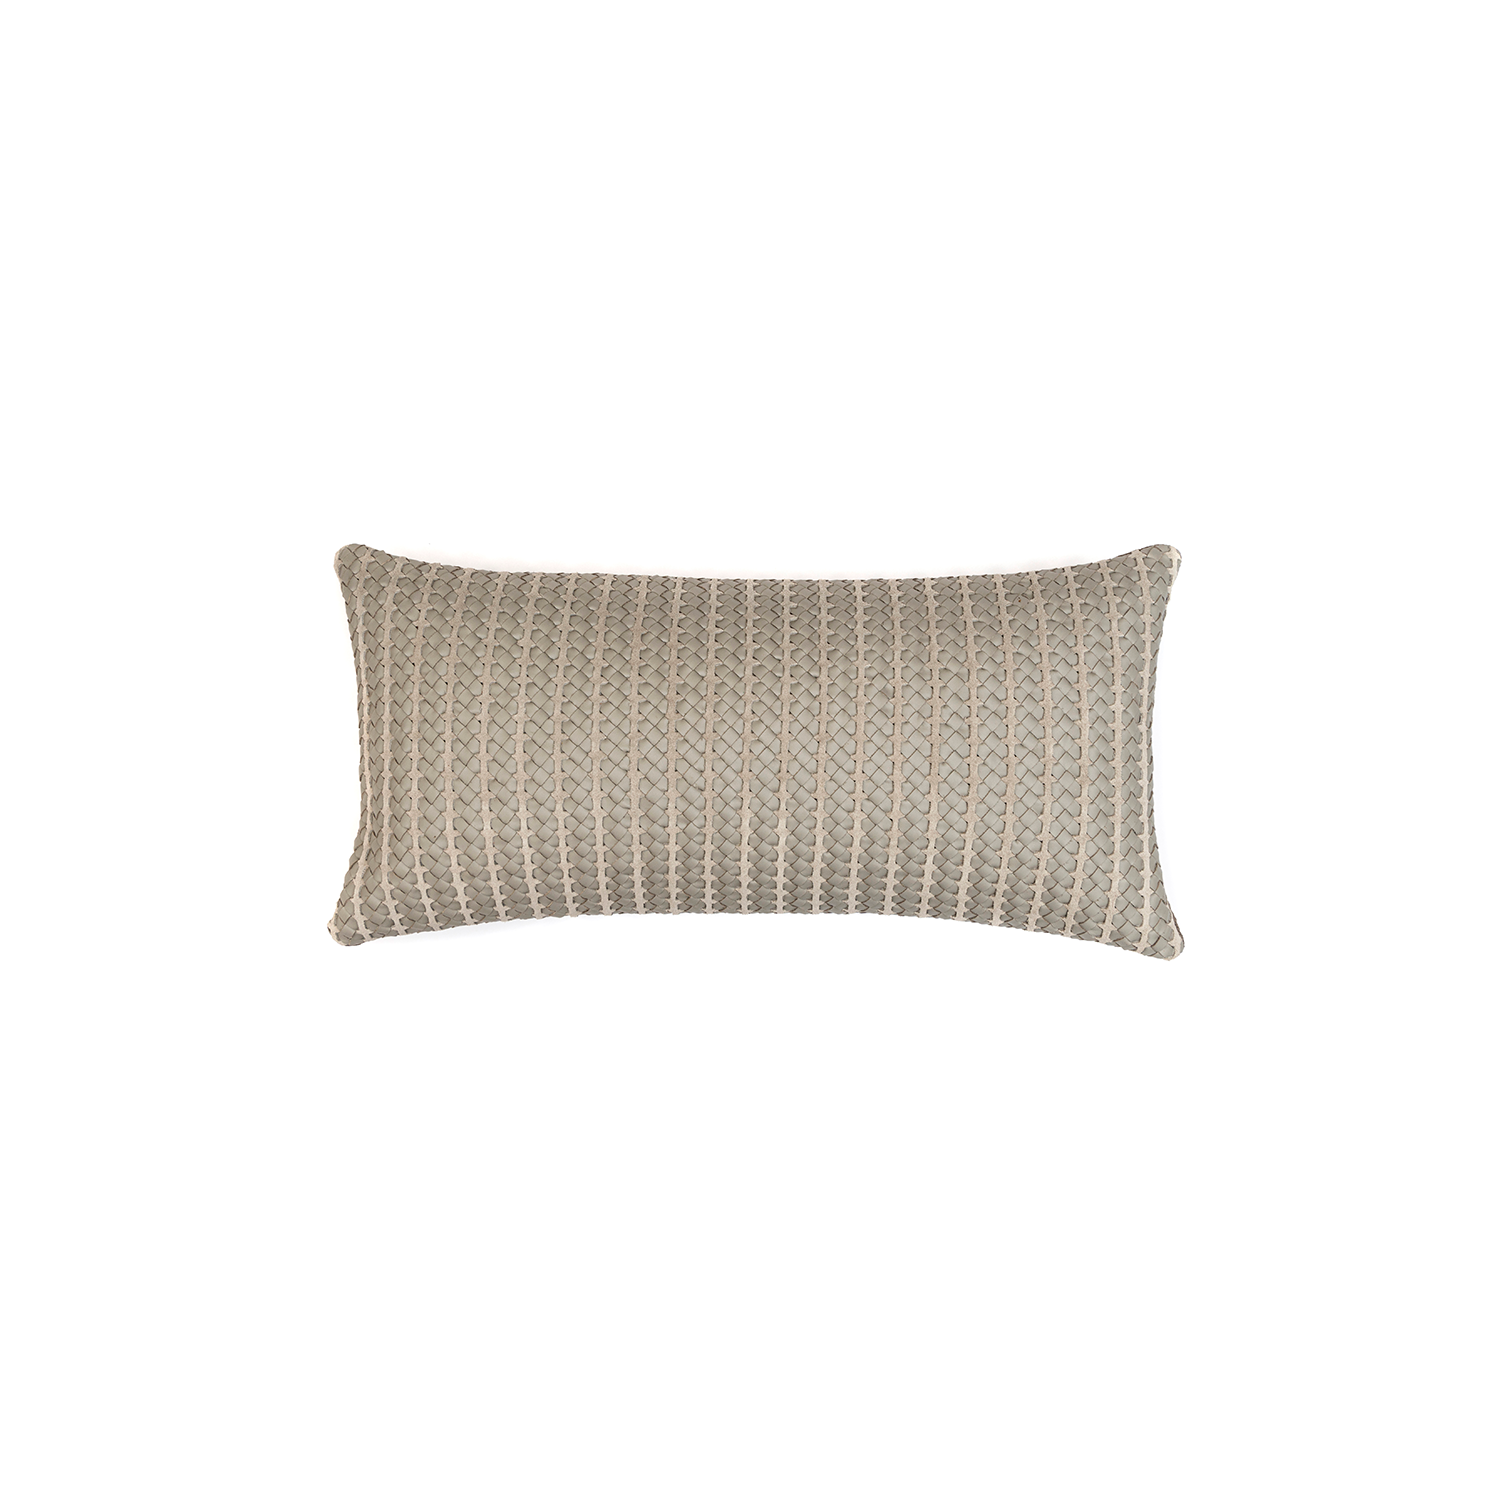 Rib Woven Leather Cushion Small - The Rib Woven Leather Cushion is designed to complement an ambient with a natural and sophisticated feeling. This cushion style is available in pleated leather or pleated suede leather. Elisa Atheniense woven handmade leather cushions are specially manufactured in Brazil using an exclusive treated leather that brings the soft feel touch to every single piece.   The front panel is handwoven in leather and the back panel is 100% Pes, made in Brazil.  The inner cushion is available in Hollow Fibre and European Duck Feathers, made in the UK.  Please enquire for more information and see colour chart for reference.   | Matter of Stuff